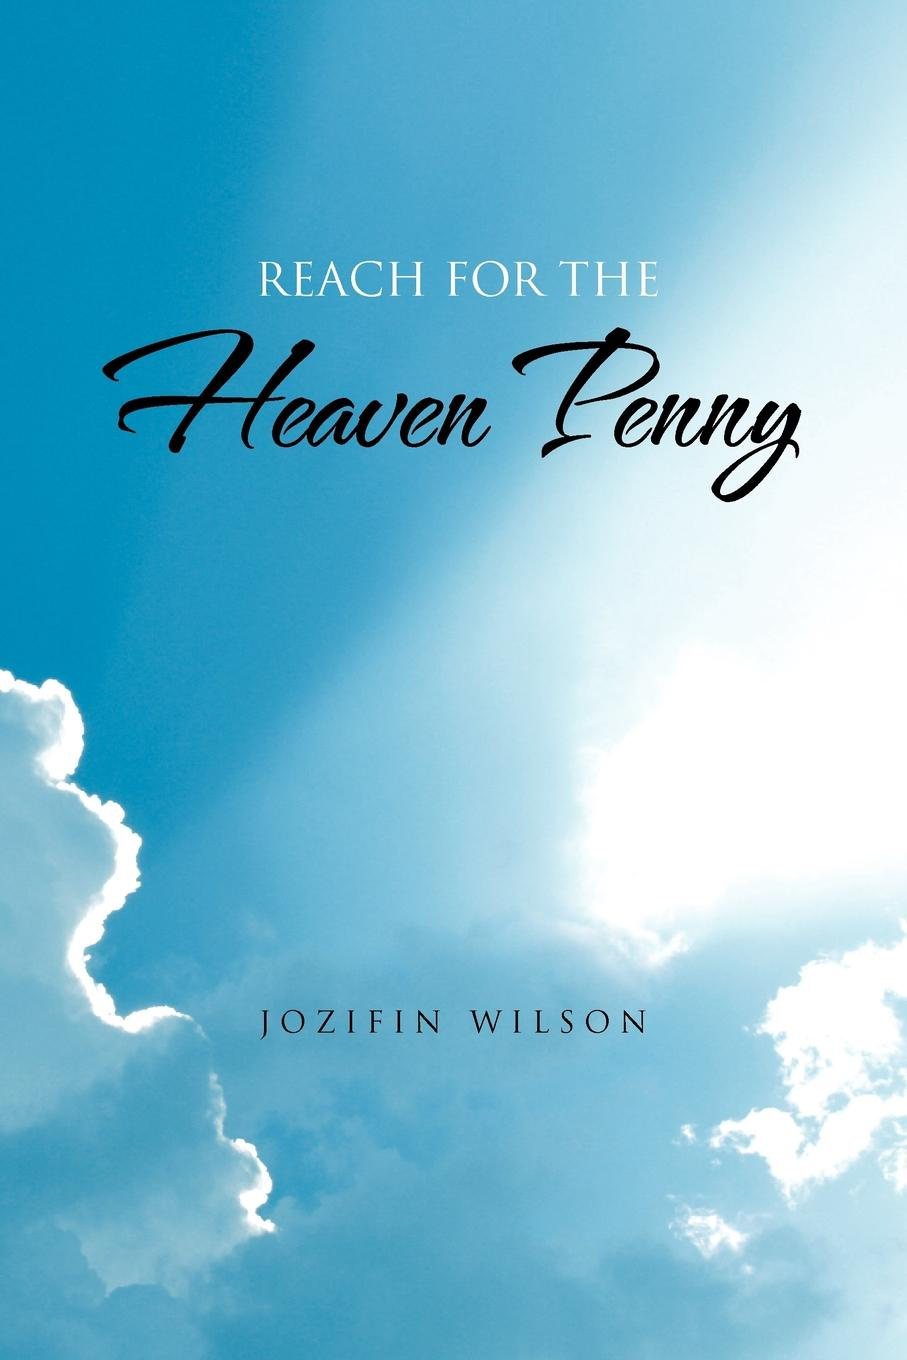 Jozifin Wilson Reach For the Heaven Penny темляк квадрат